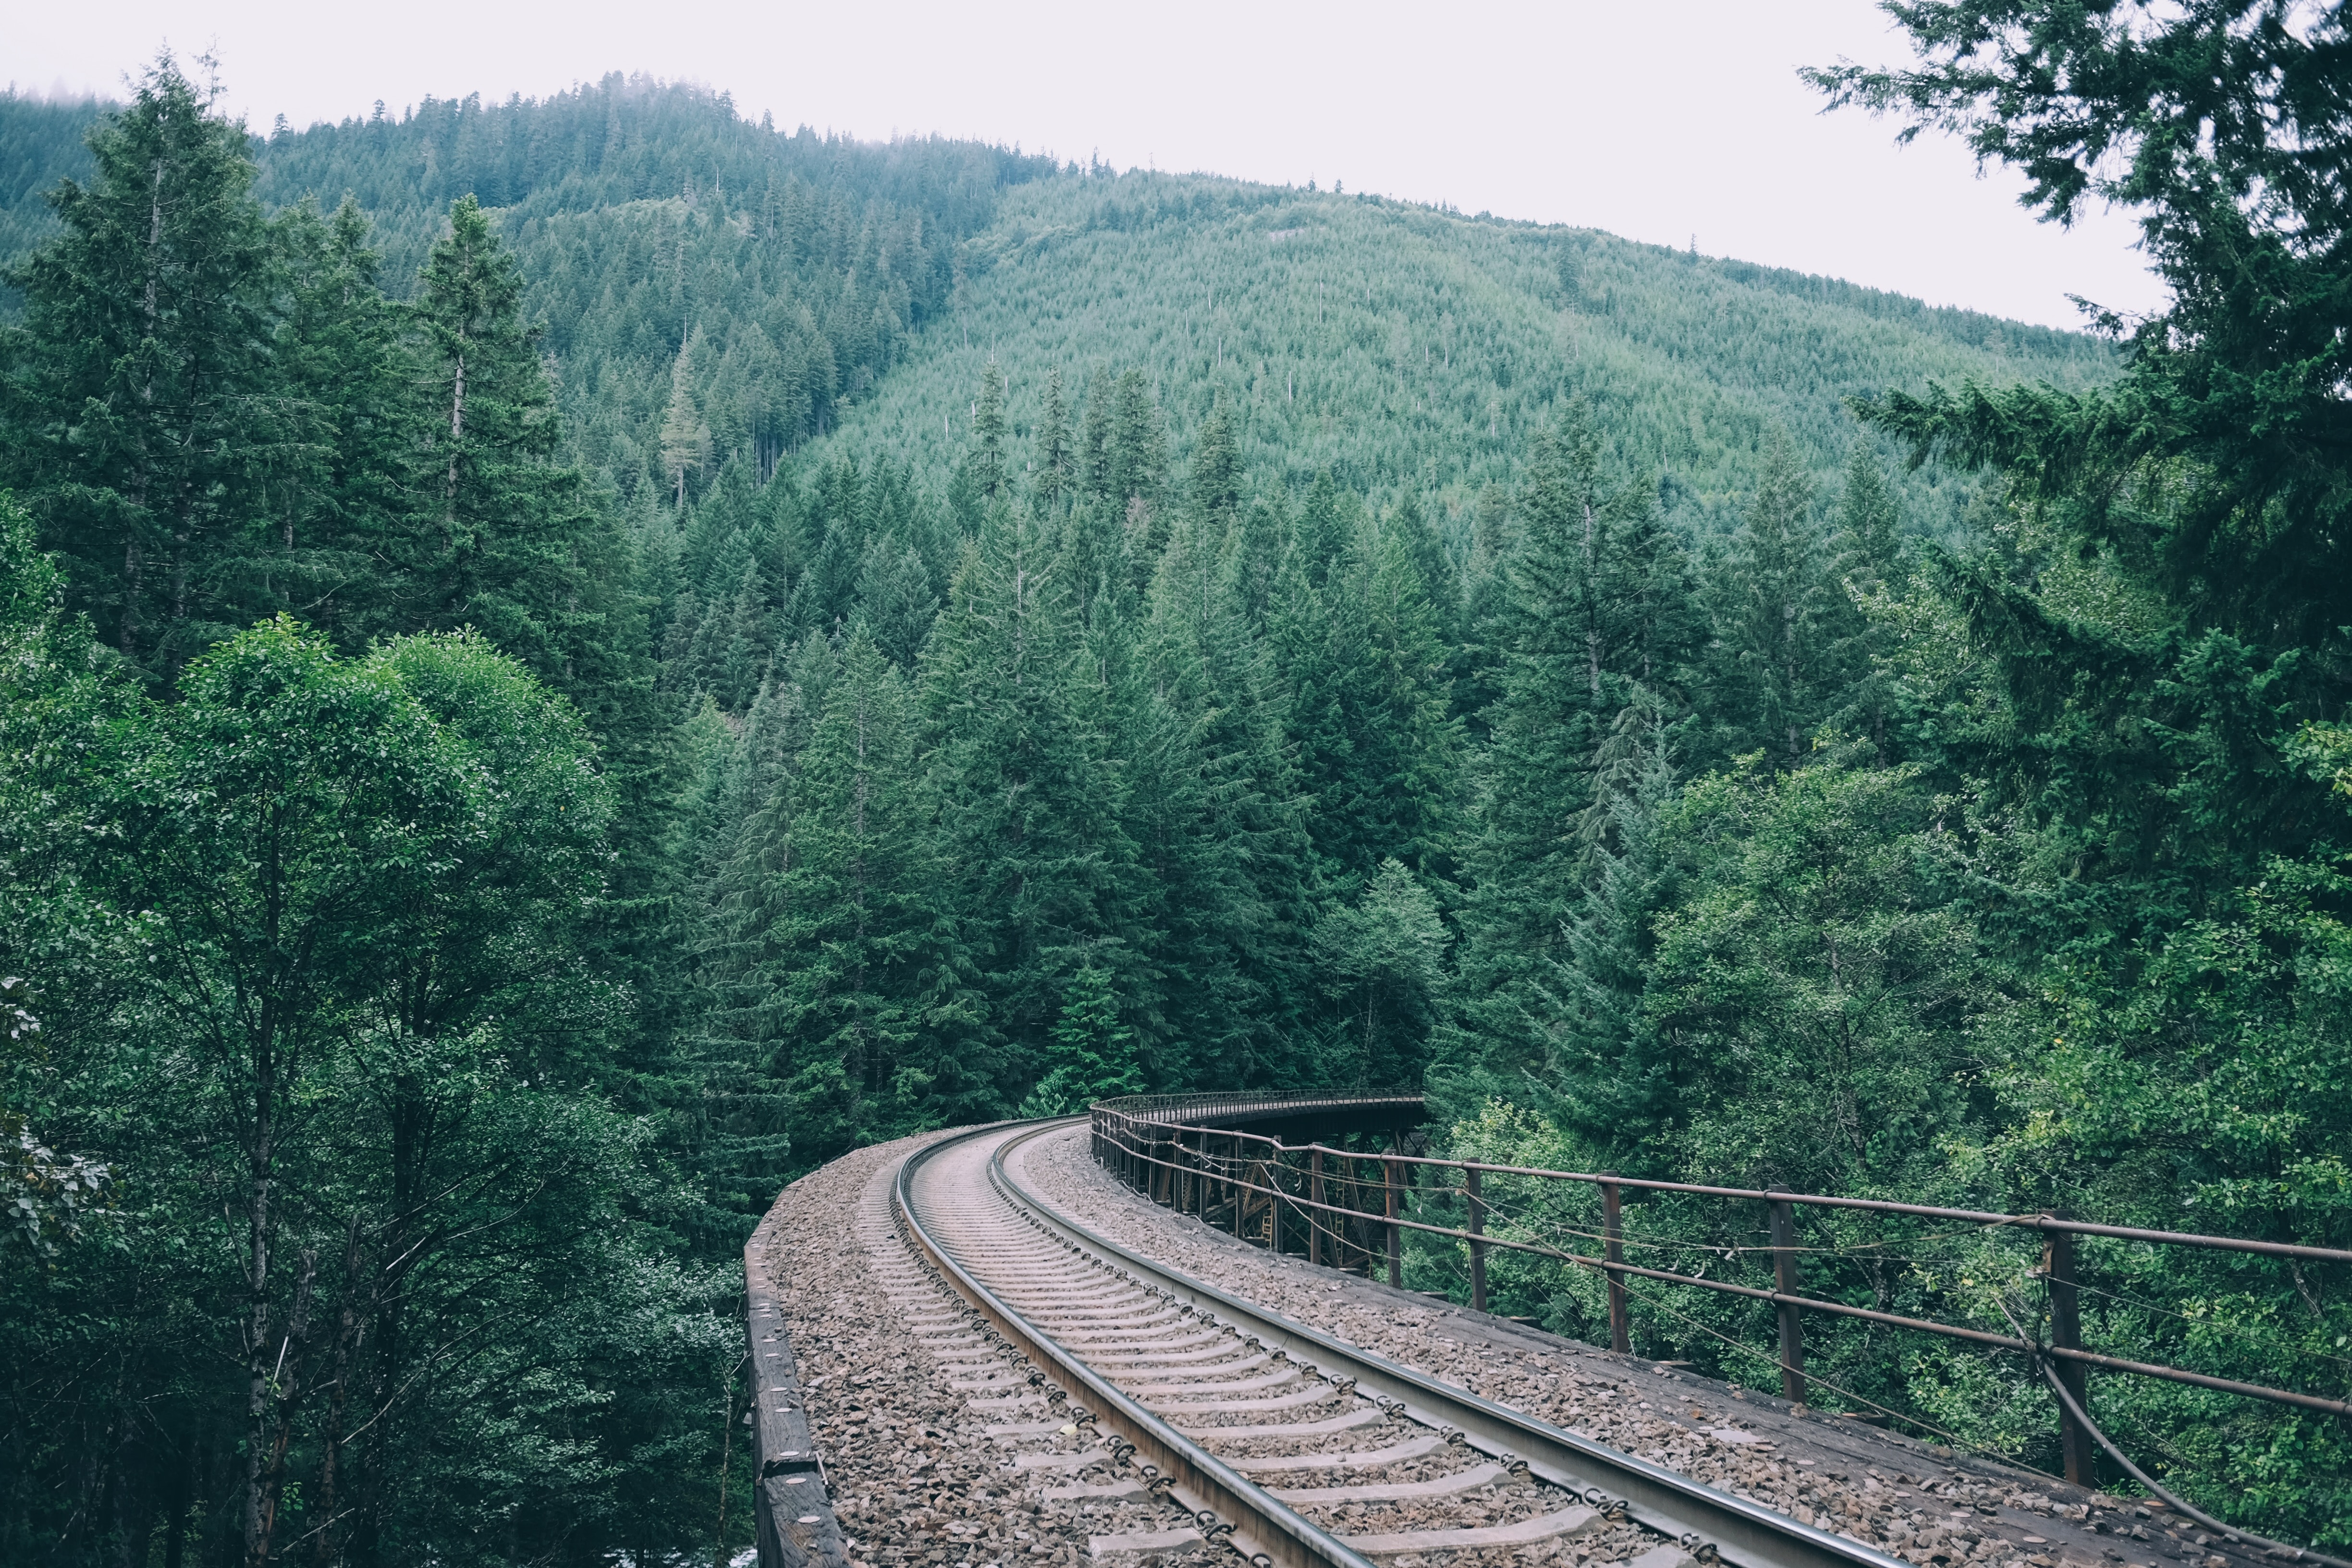 An elevated railroad track in a dense evergreen forest